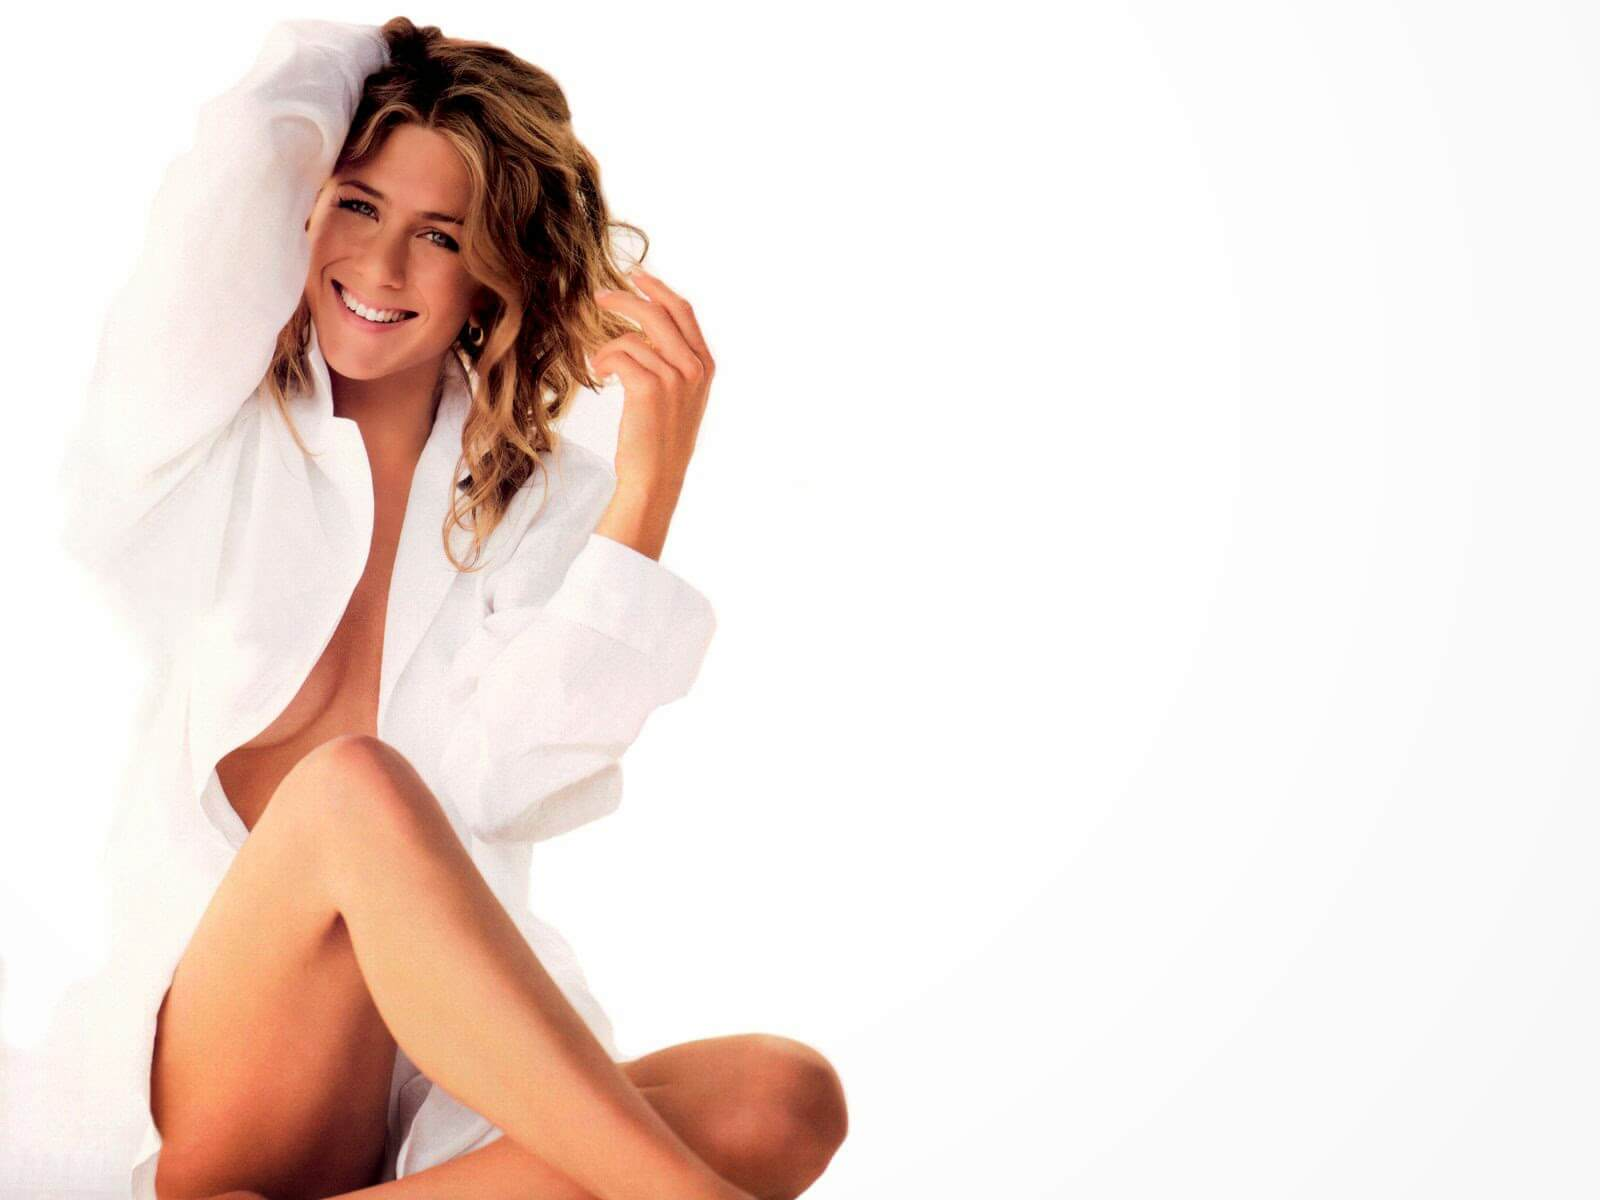 Jennifer-Aniston-Sexy-pictures-wearing-shirt-only